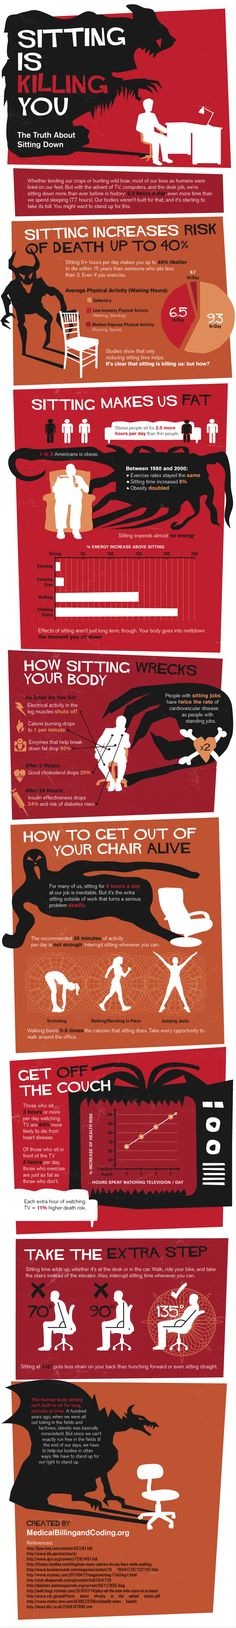 Sitting is killing you!! Change your posture and do it today!